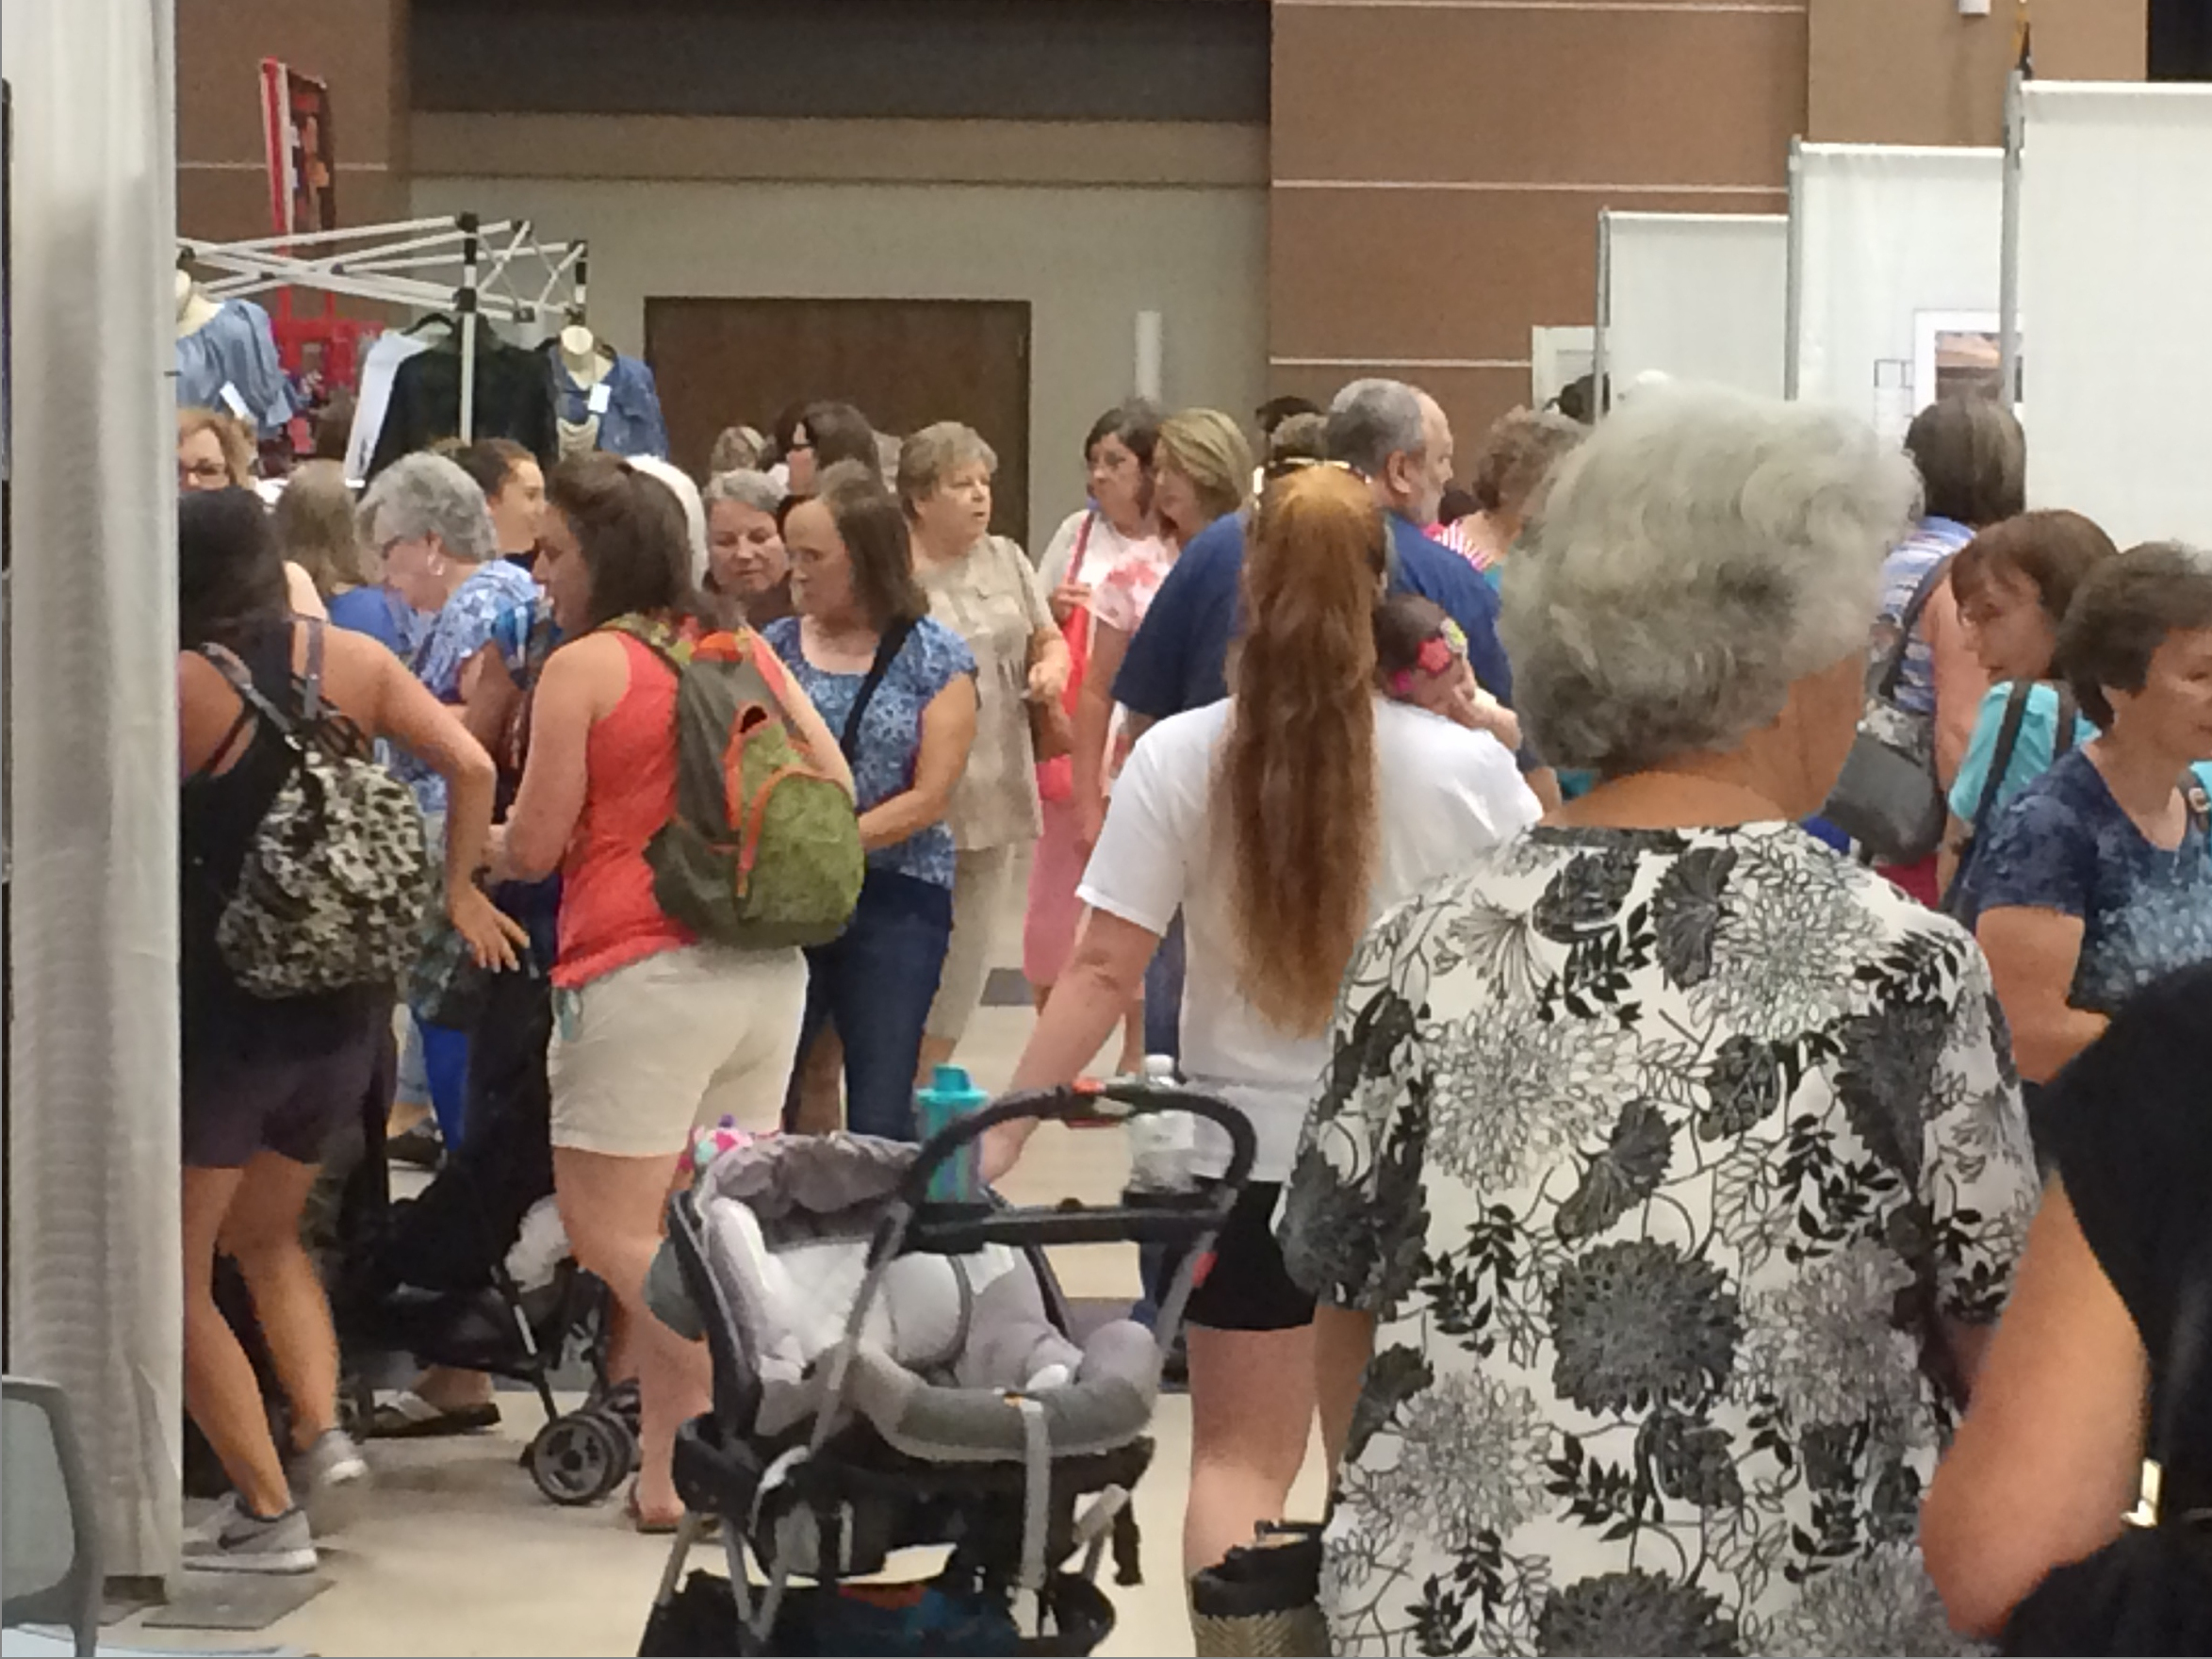 Crowds at Mississippi Craft Show